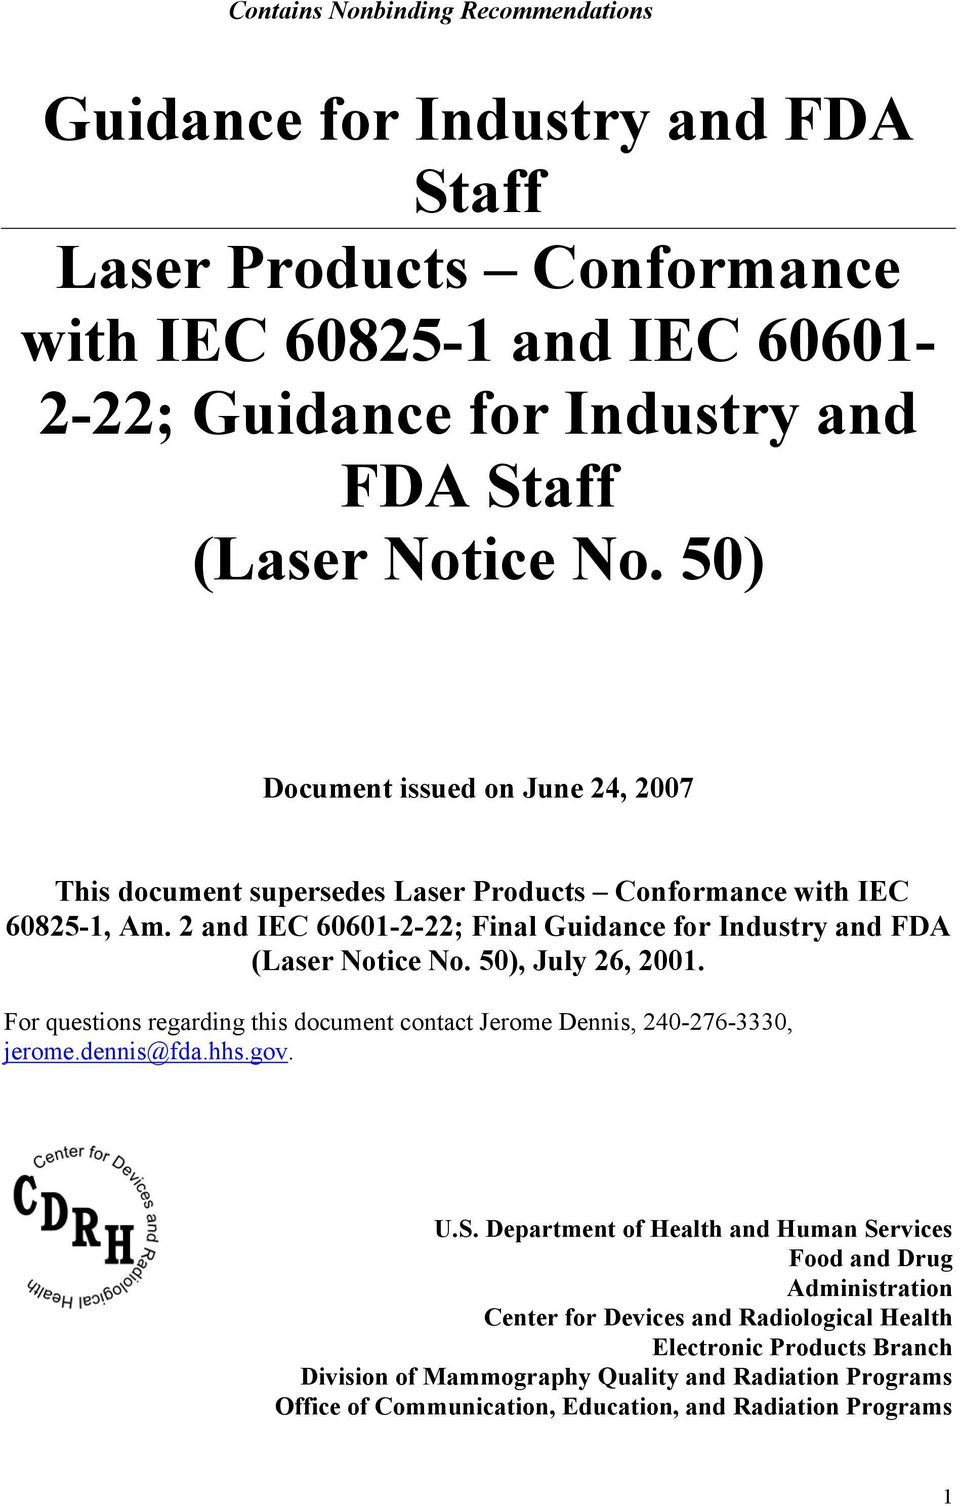 2 and IEC 60601-2-22; Final Guidance for Industry and FDA (Laser Notice No. 50), July 26, 2001. For questions regarding this document contact Jerome Dennis, 240-276-3330, jerome.